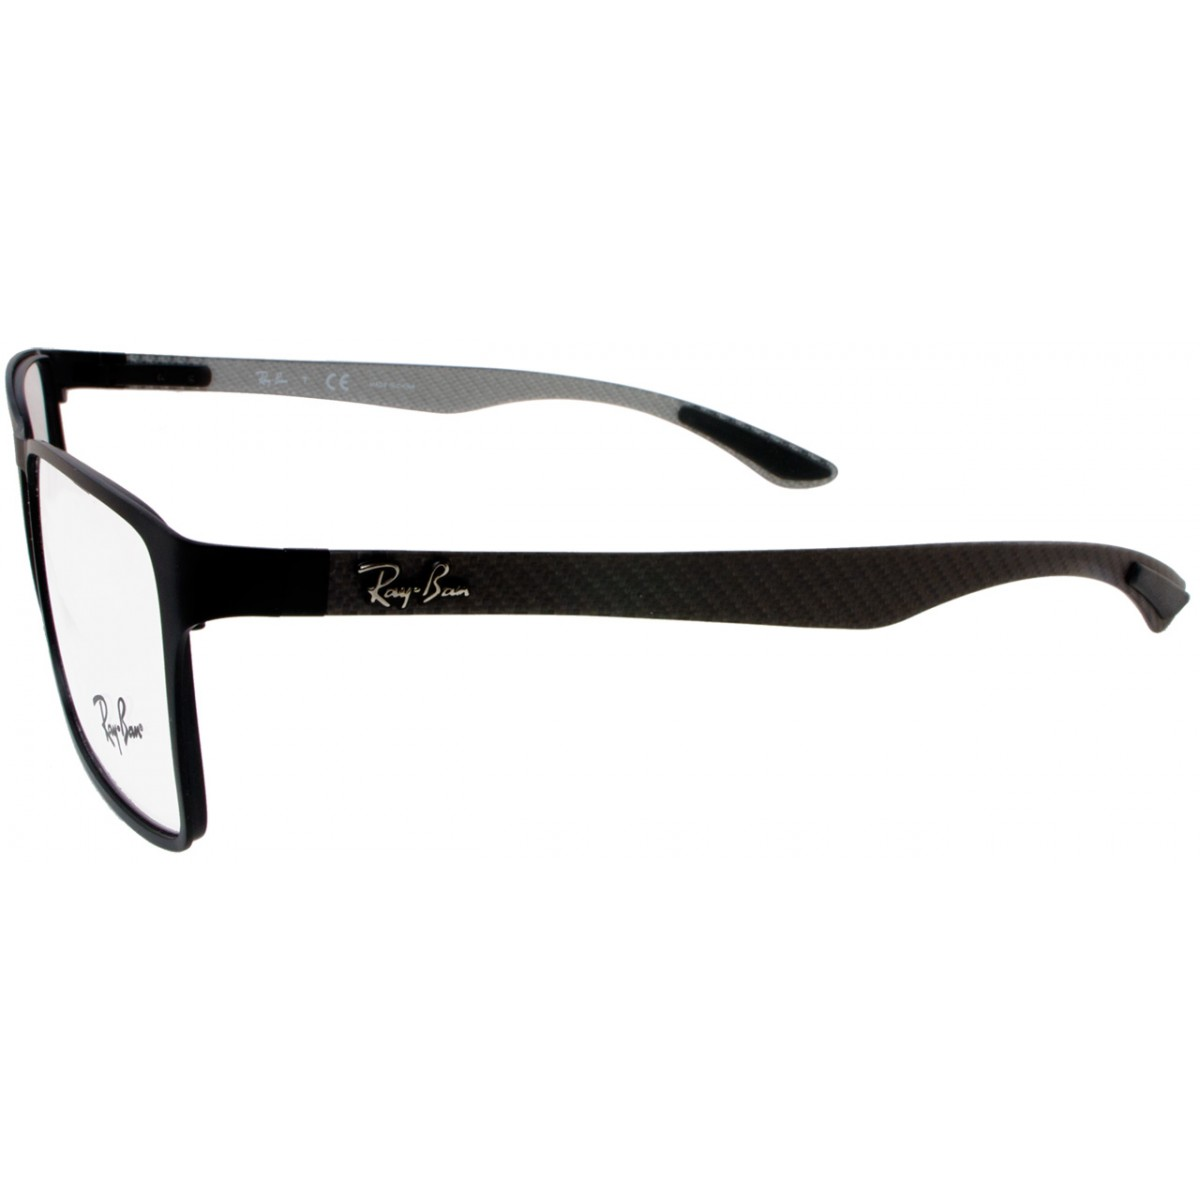 c7db7f17fca Online Eyeglasses with Customer Service Center in California Ray Ban ...